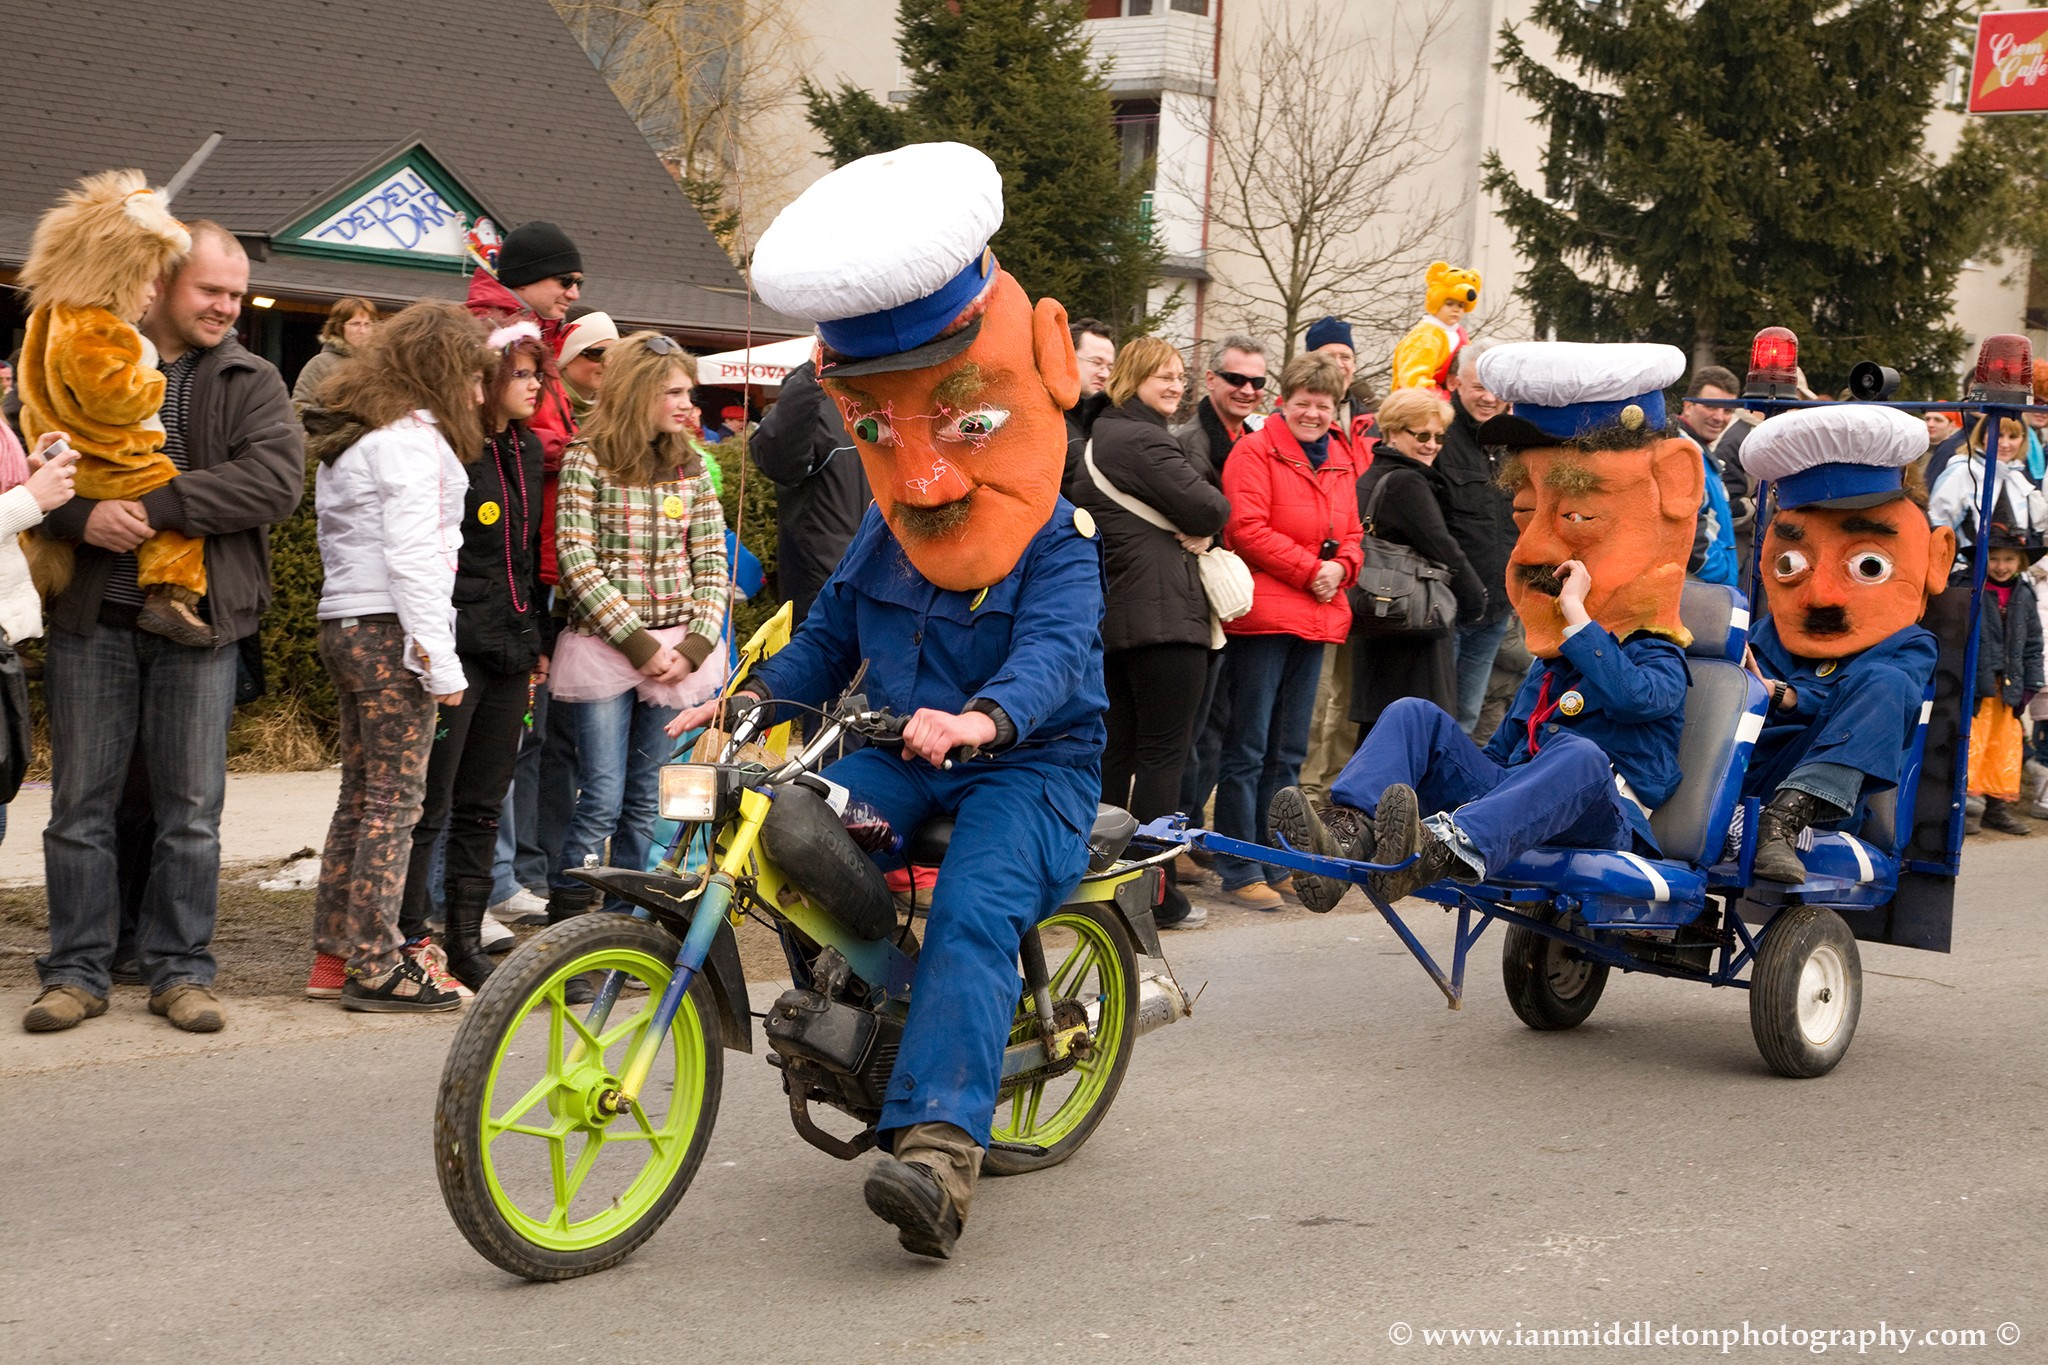 The annual Pust carnival in Cerknica, Slovenia 2009 ( A traditional celebration where people dress up to scare off the winter )